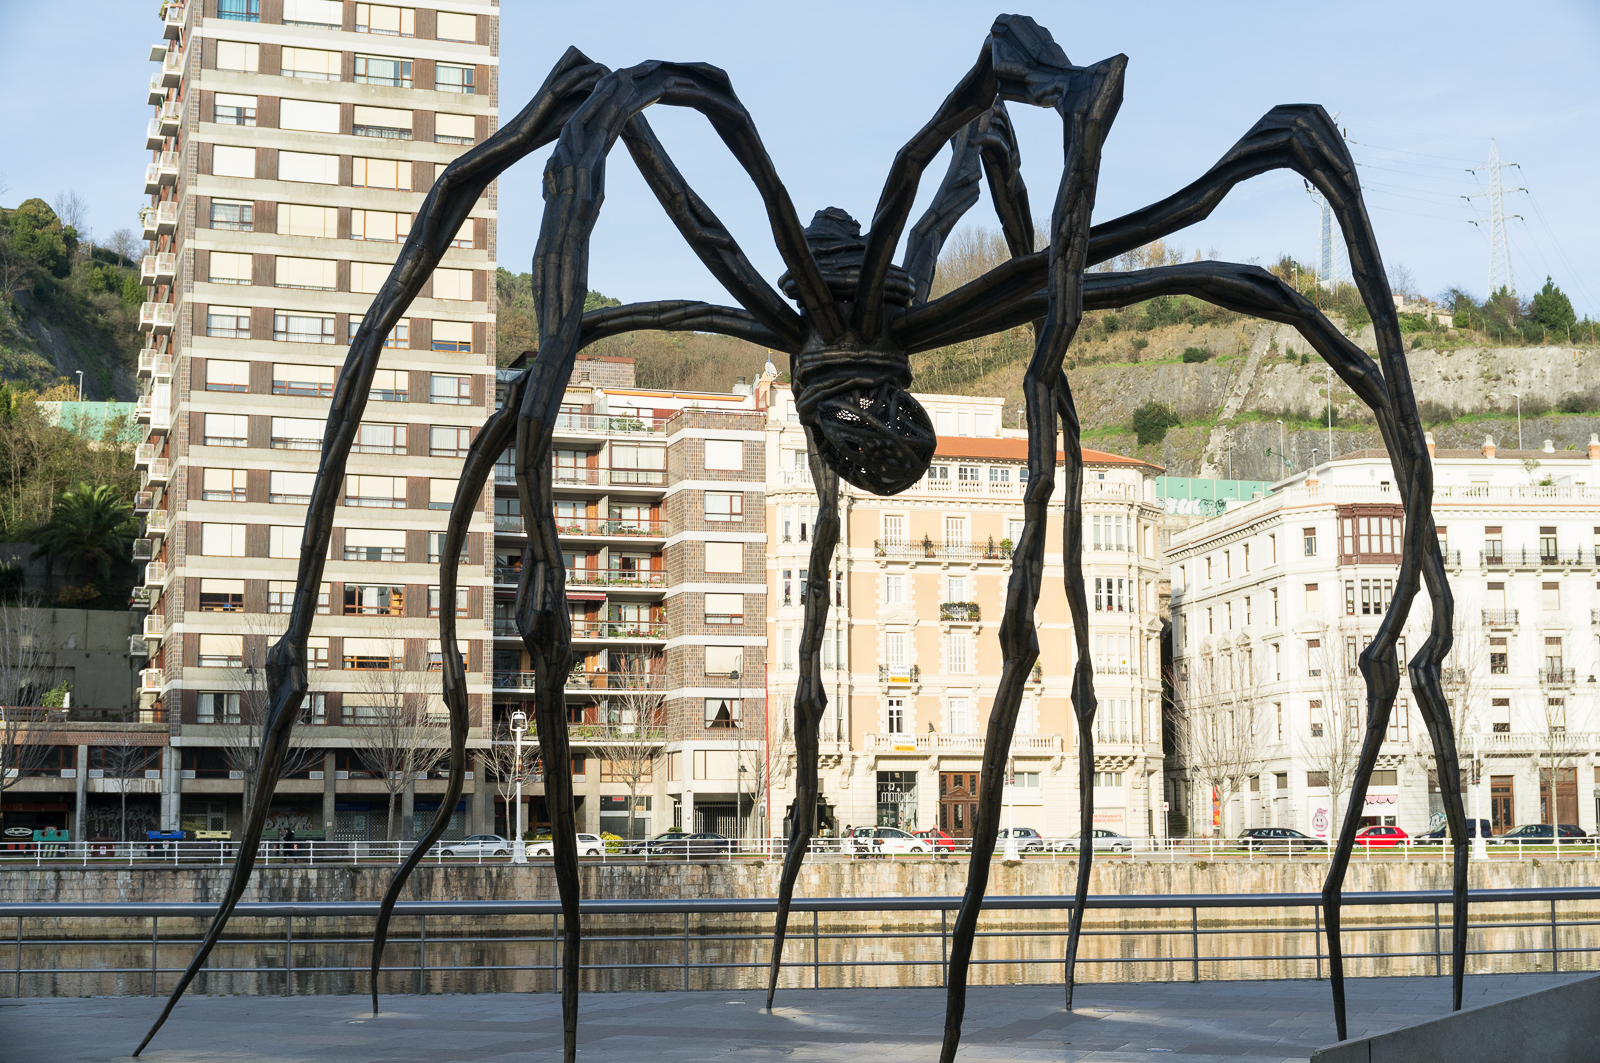 The giant spider Maman, almost nine meters tall, by Louise Bourgeois, Guggenheim Bilbao